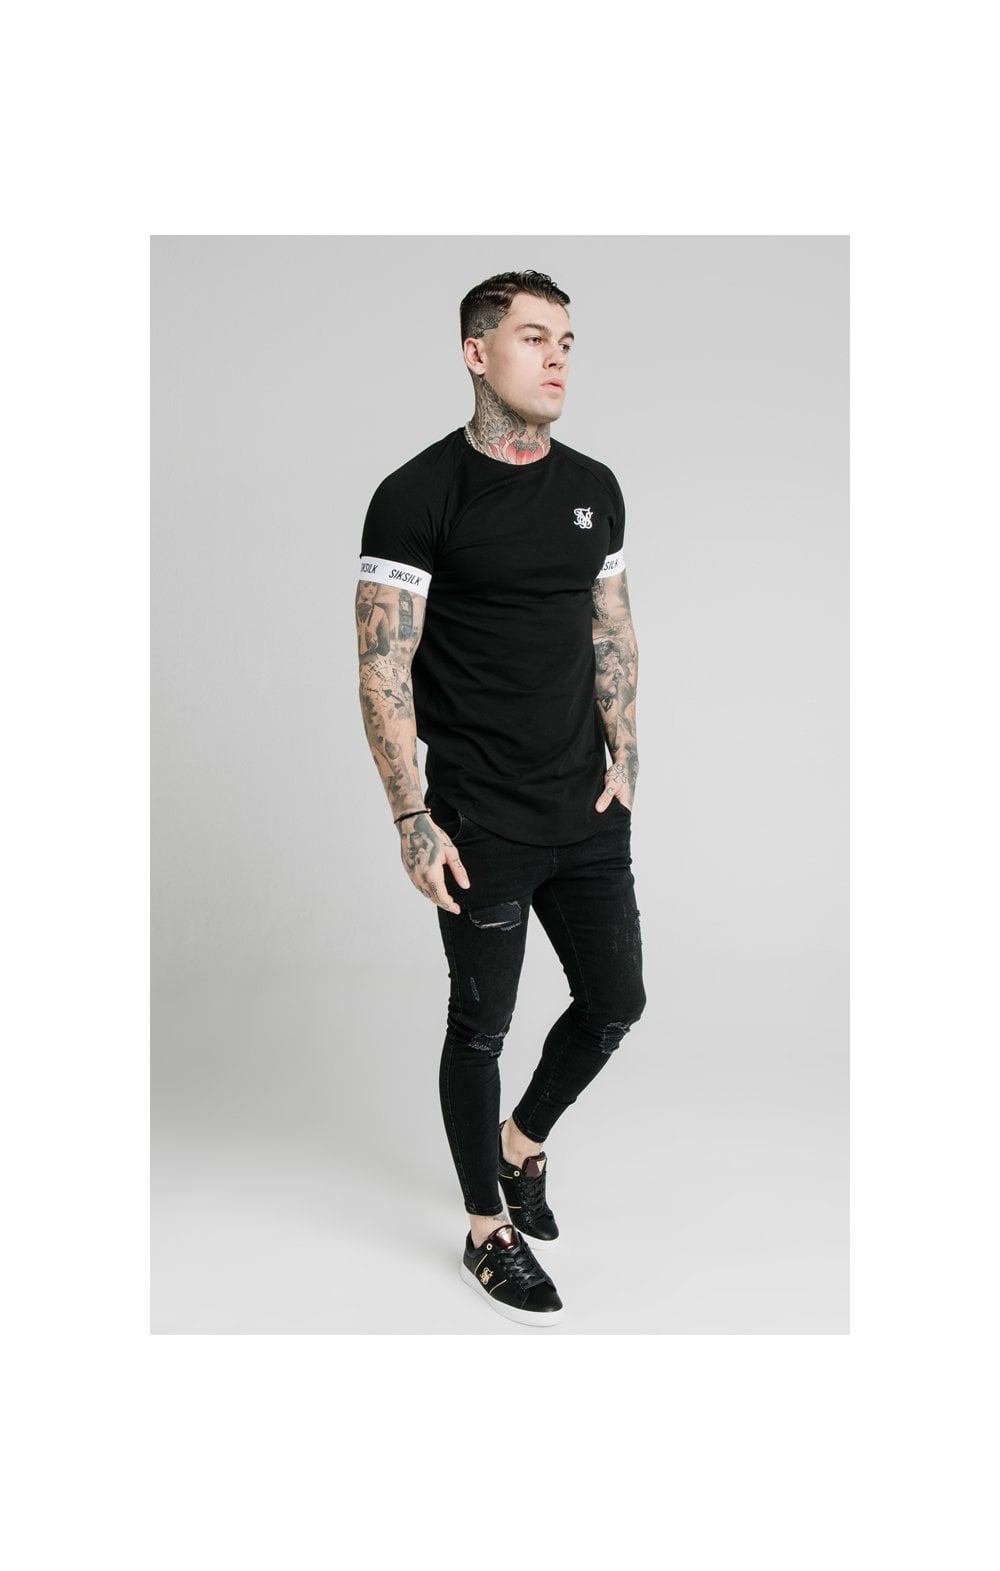 SikSilk S/S Raglan Tech Tee - Black (2)